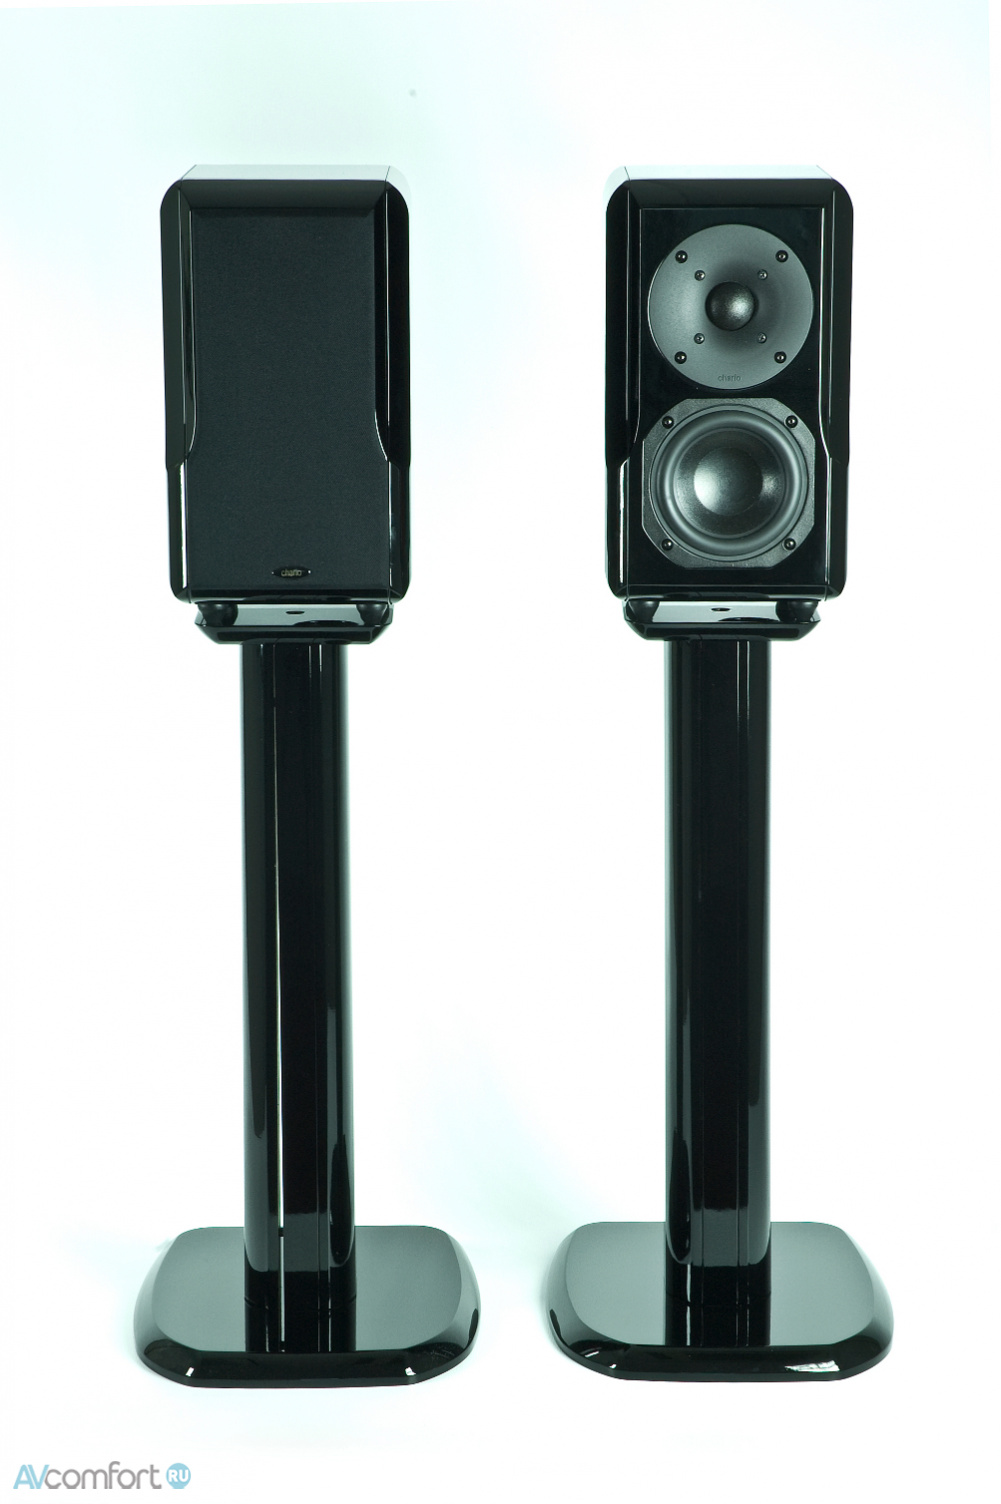 AVComfort, CHARIO Constellation K Delphinus Stand High Gloss Black